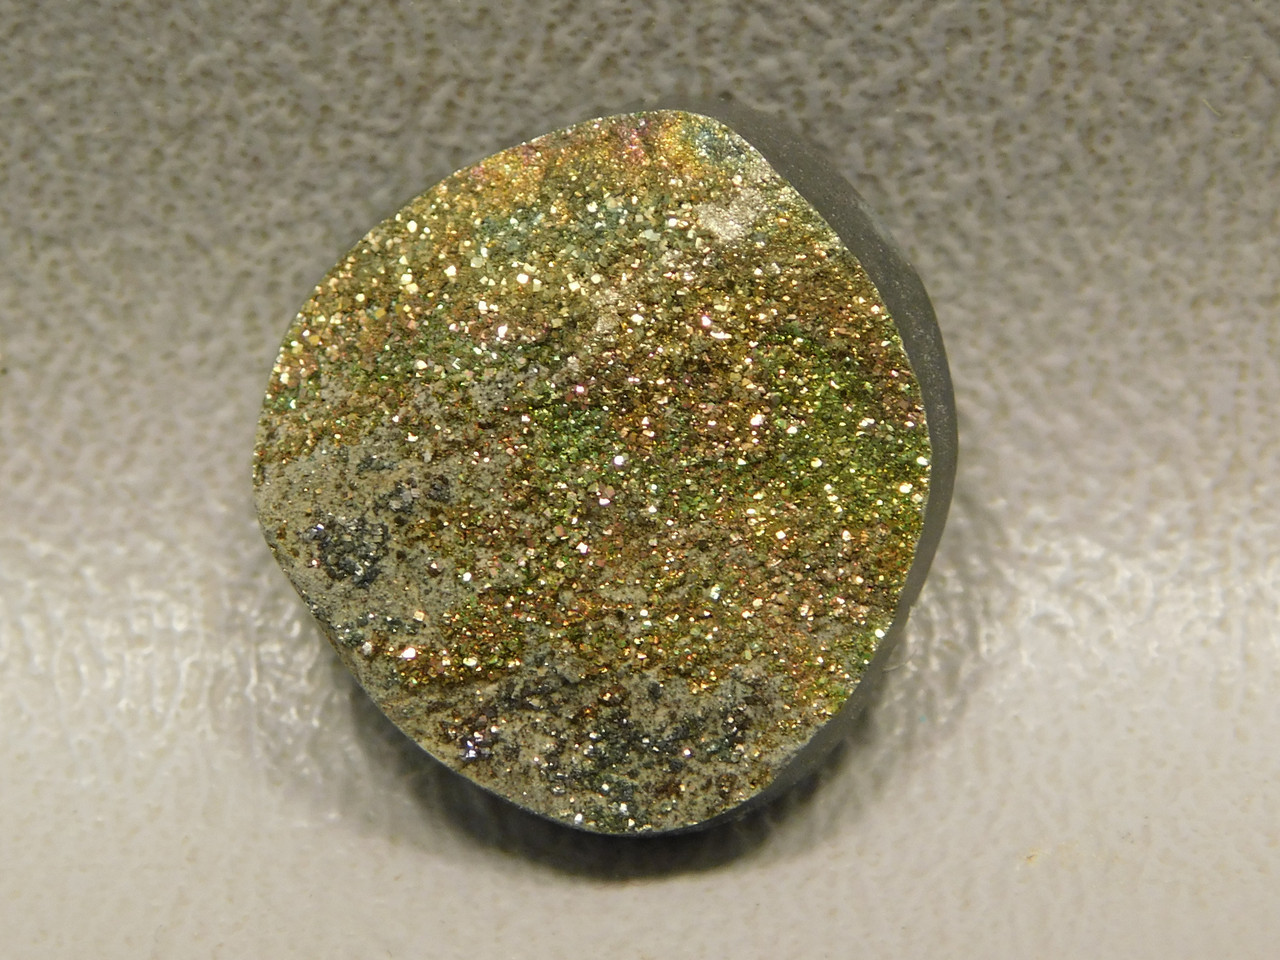 Rainbow Pyrite Small Stone Cabochon Custom Cut 18 mm Round #11